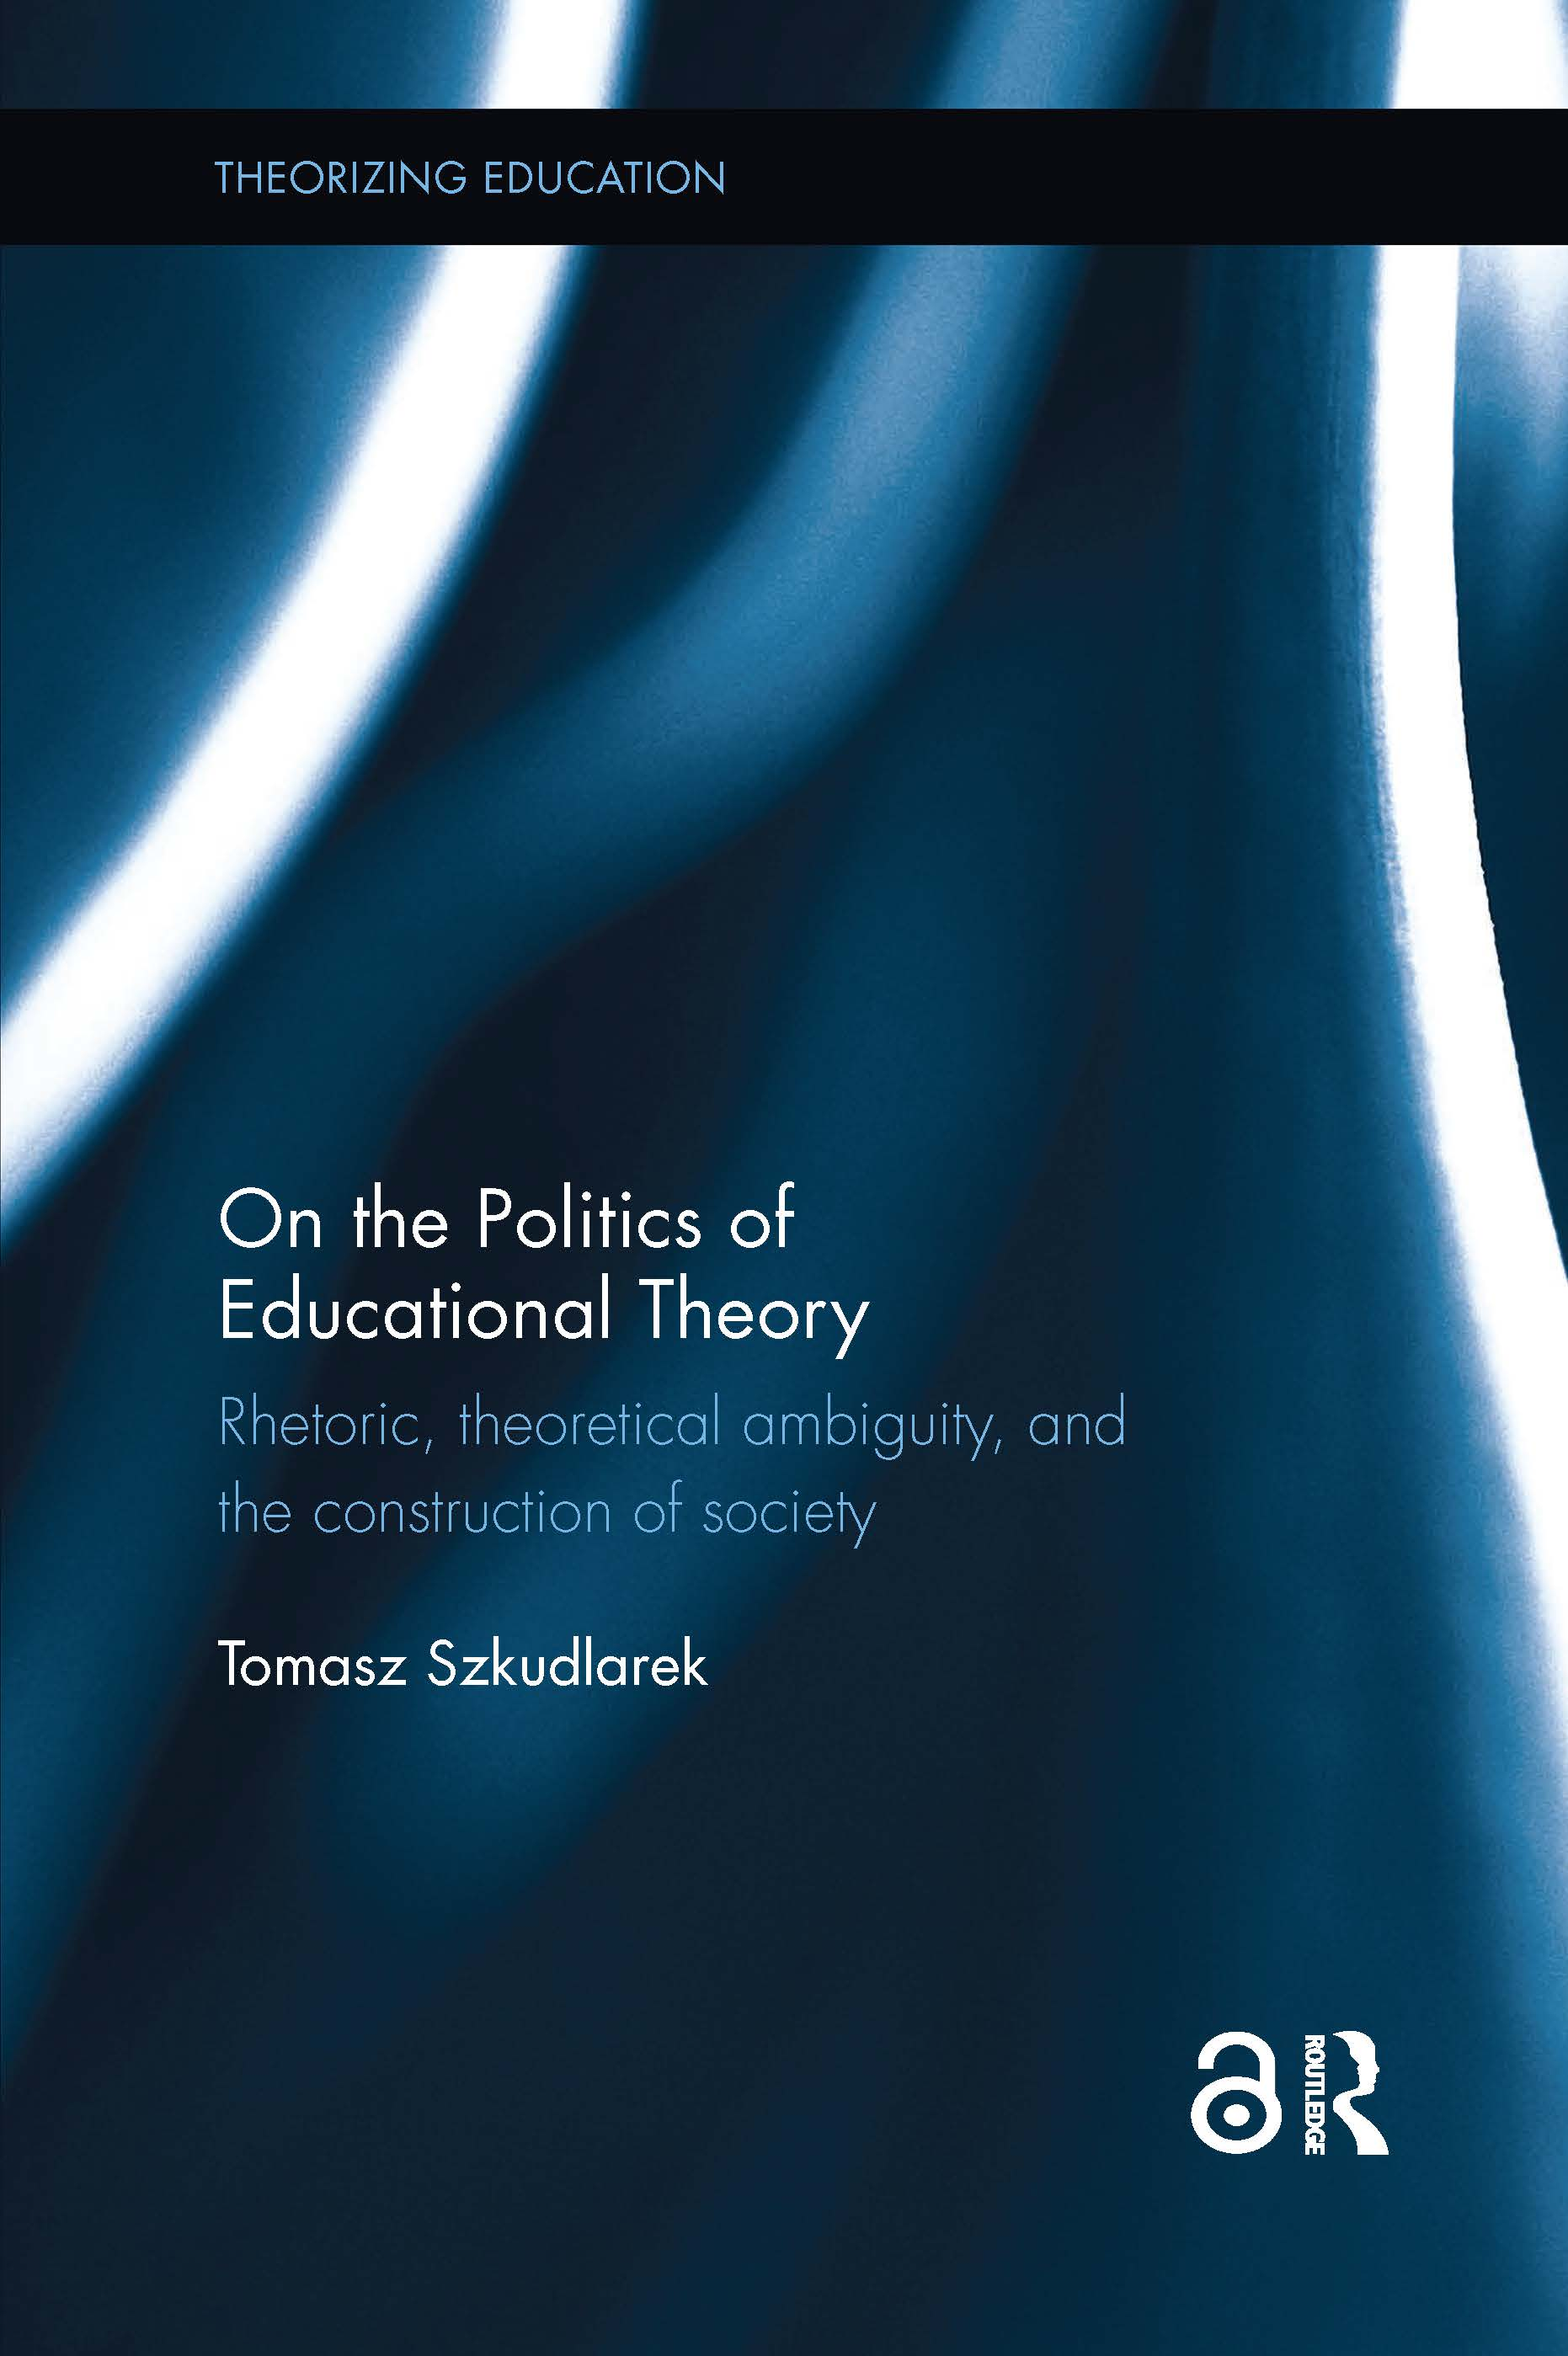 On the Politics of Educational Theory: Rhetoric, theoretical ambiguity, and the construction of society book cover